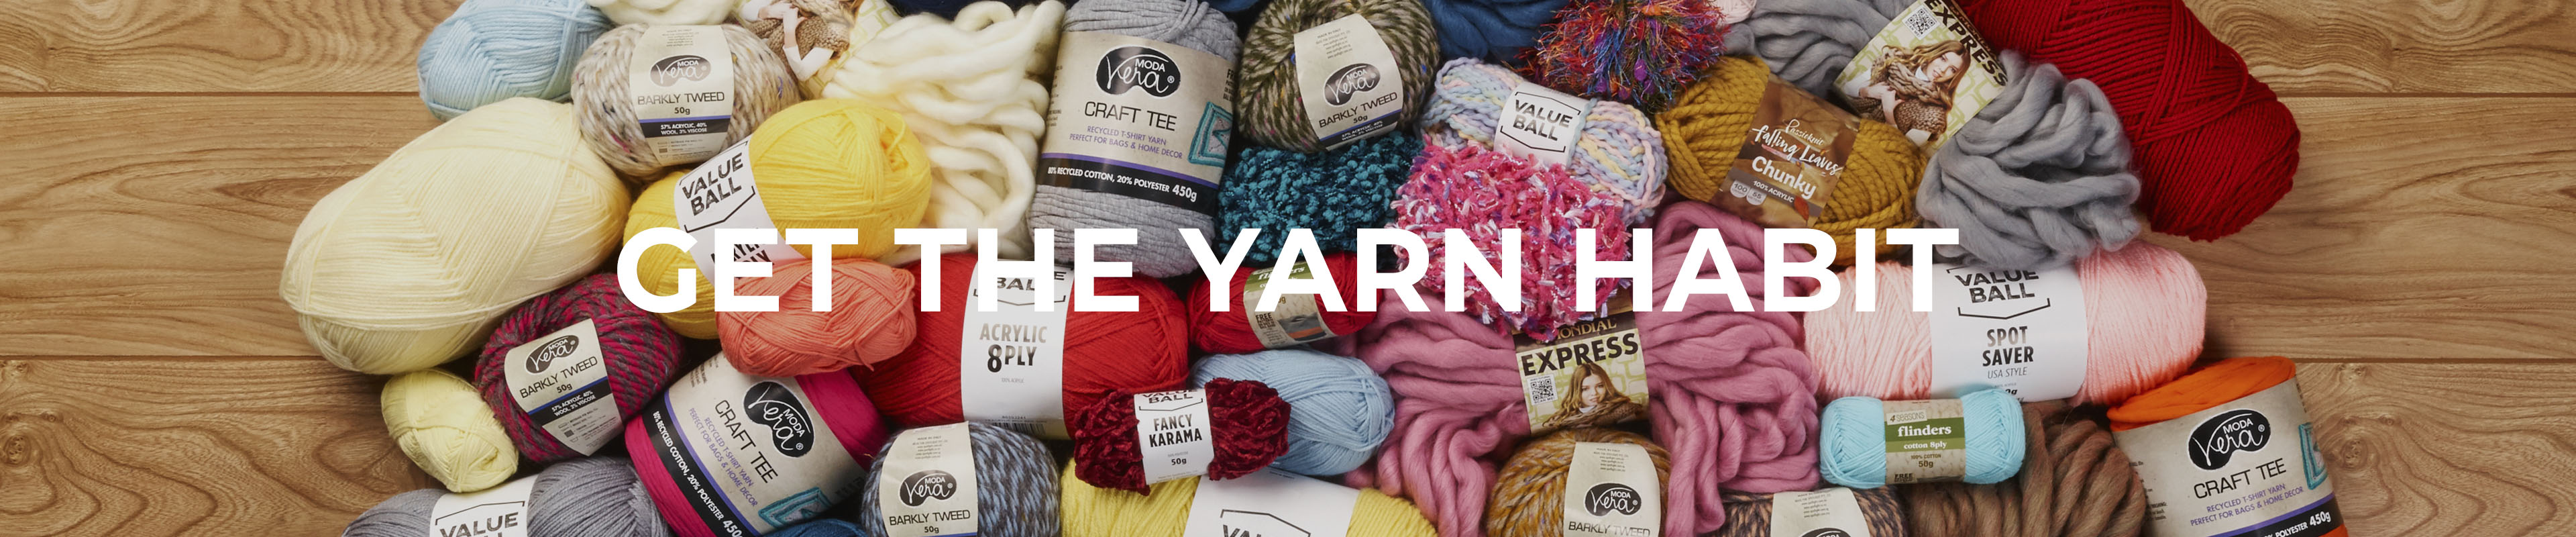 Shop Our Get The Yarn Habit Range